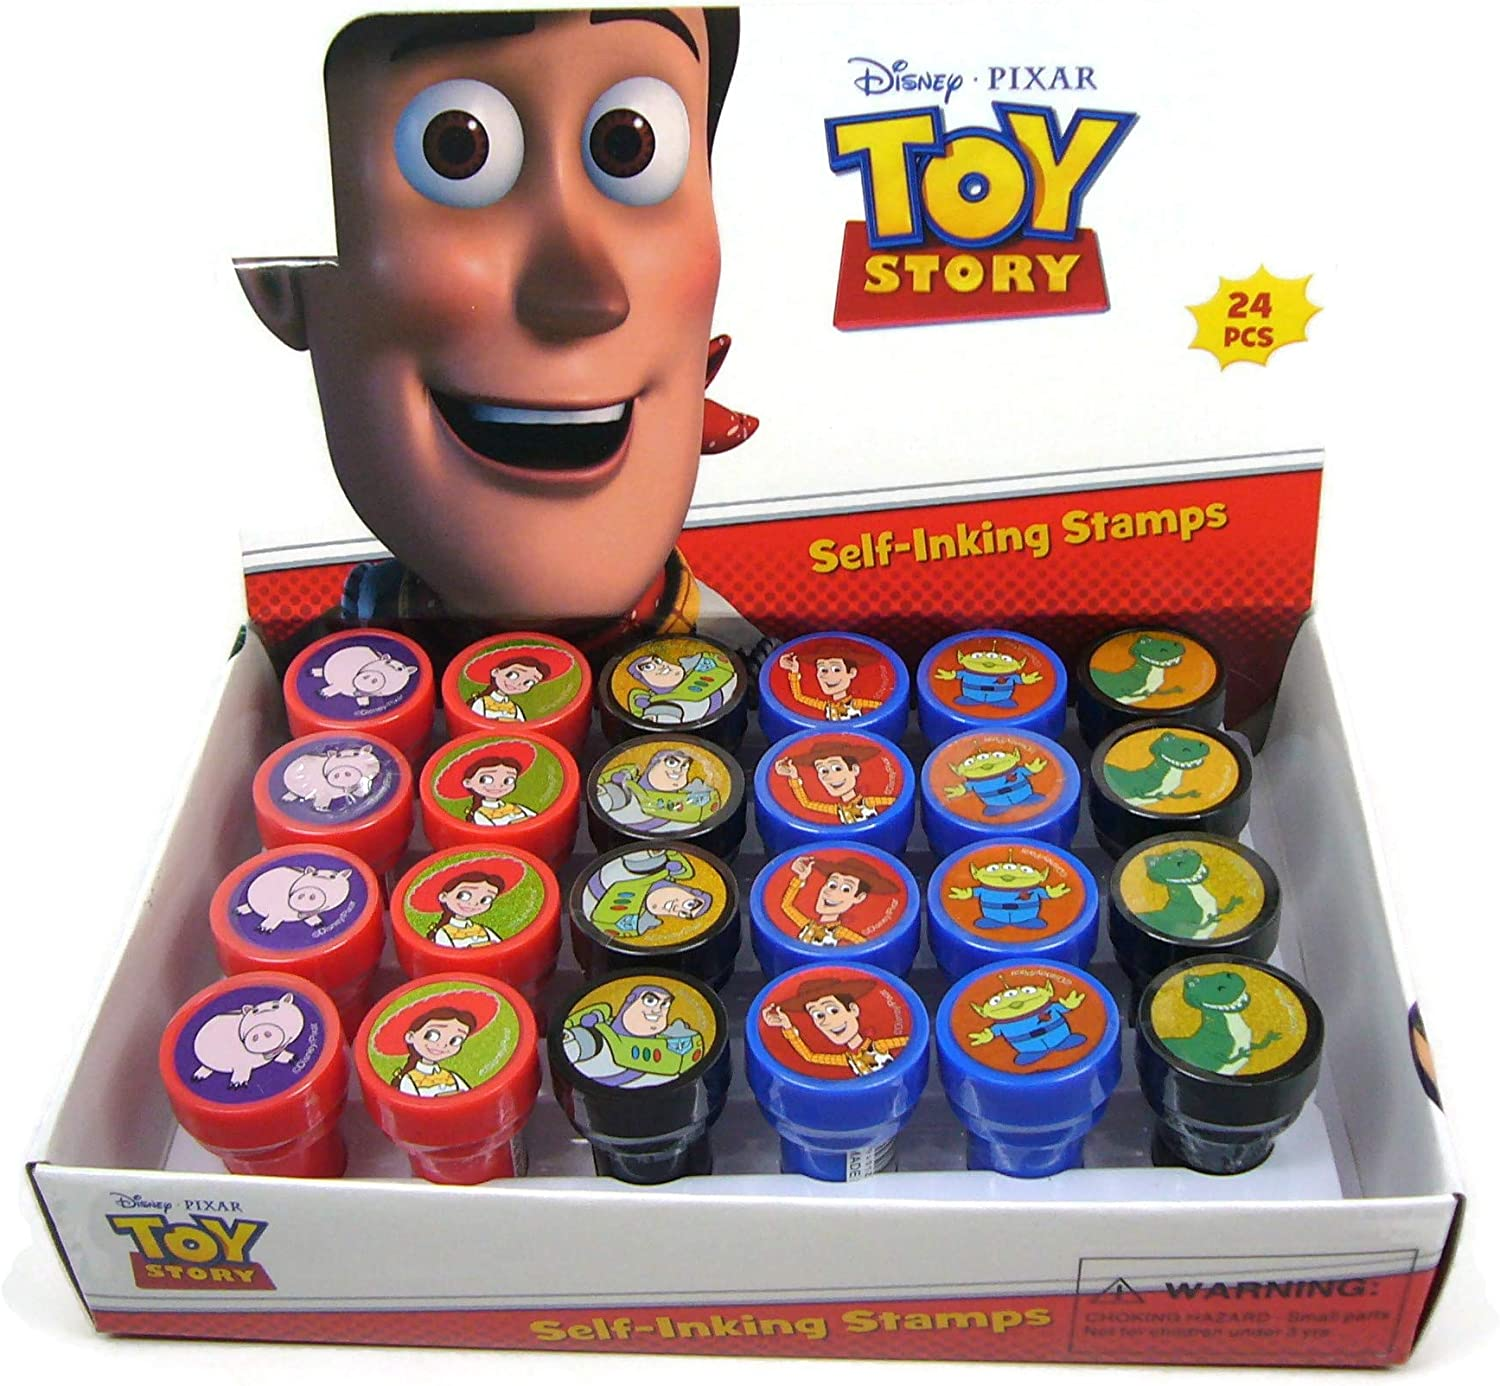 Complete Box Disney Toy Story Self-inking Stamps Birthday Party Favors 24 Pieces